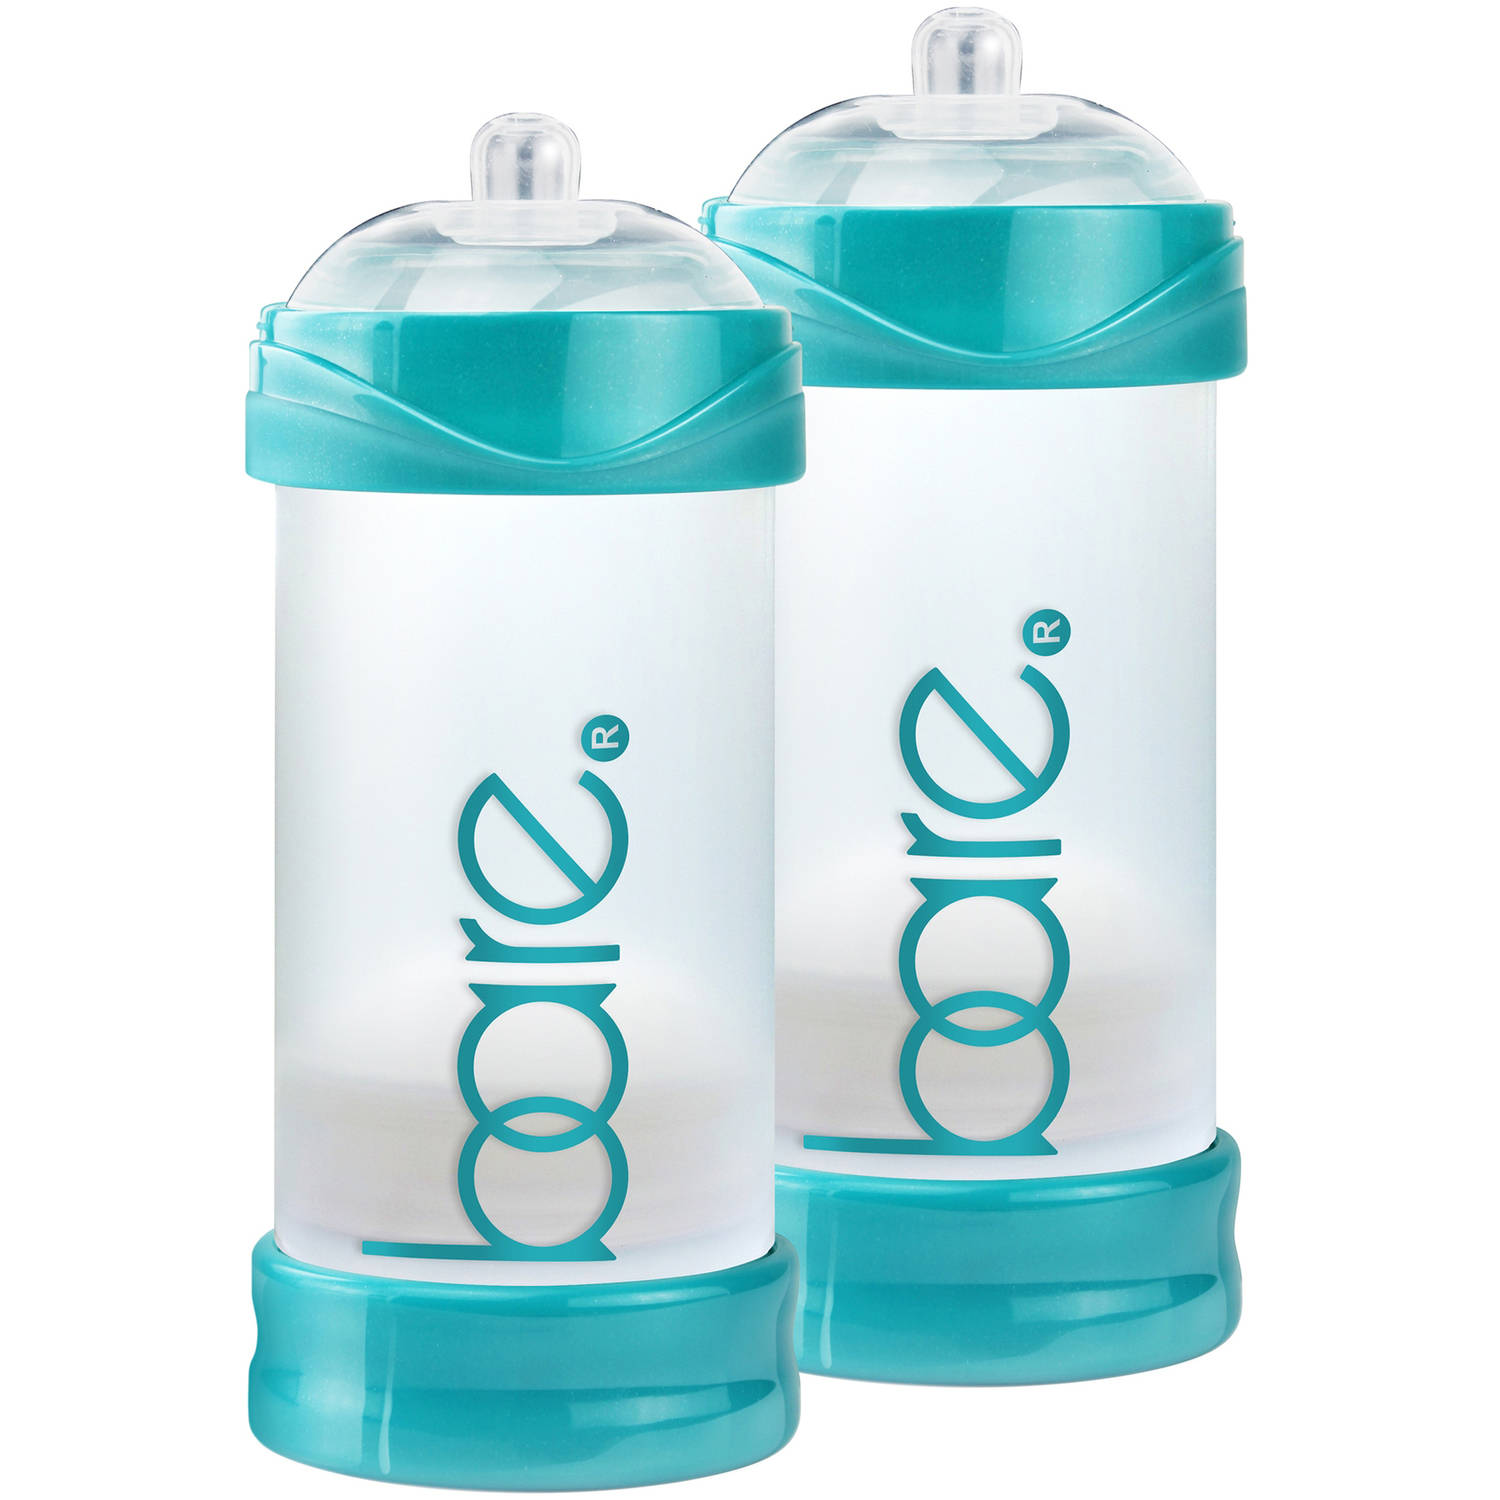 BARE Air-free 8oz Twin Pack with Perfe-latch Nipples, Breast-like & Air-free by BARE AIR-FREE FEEDING SYSTEM